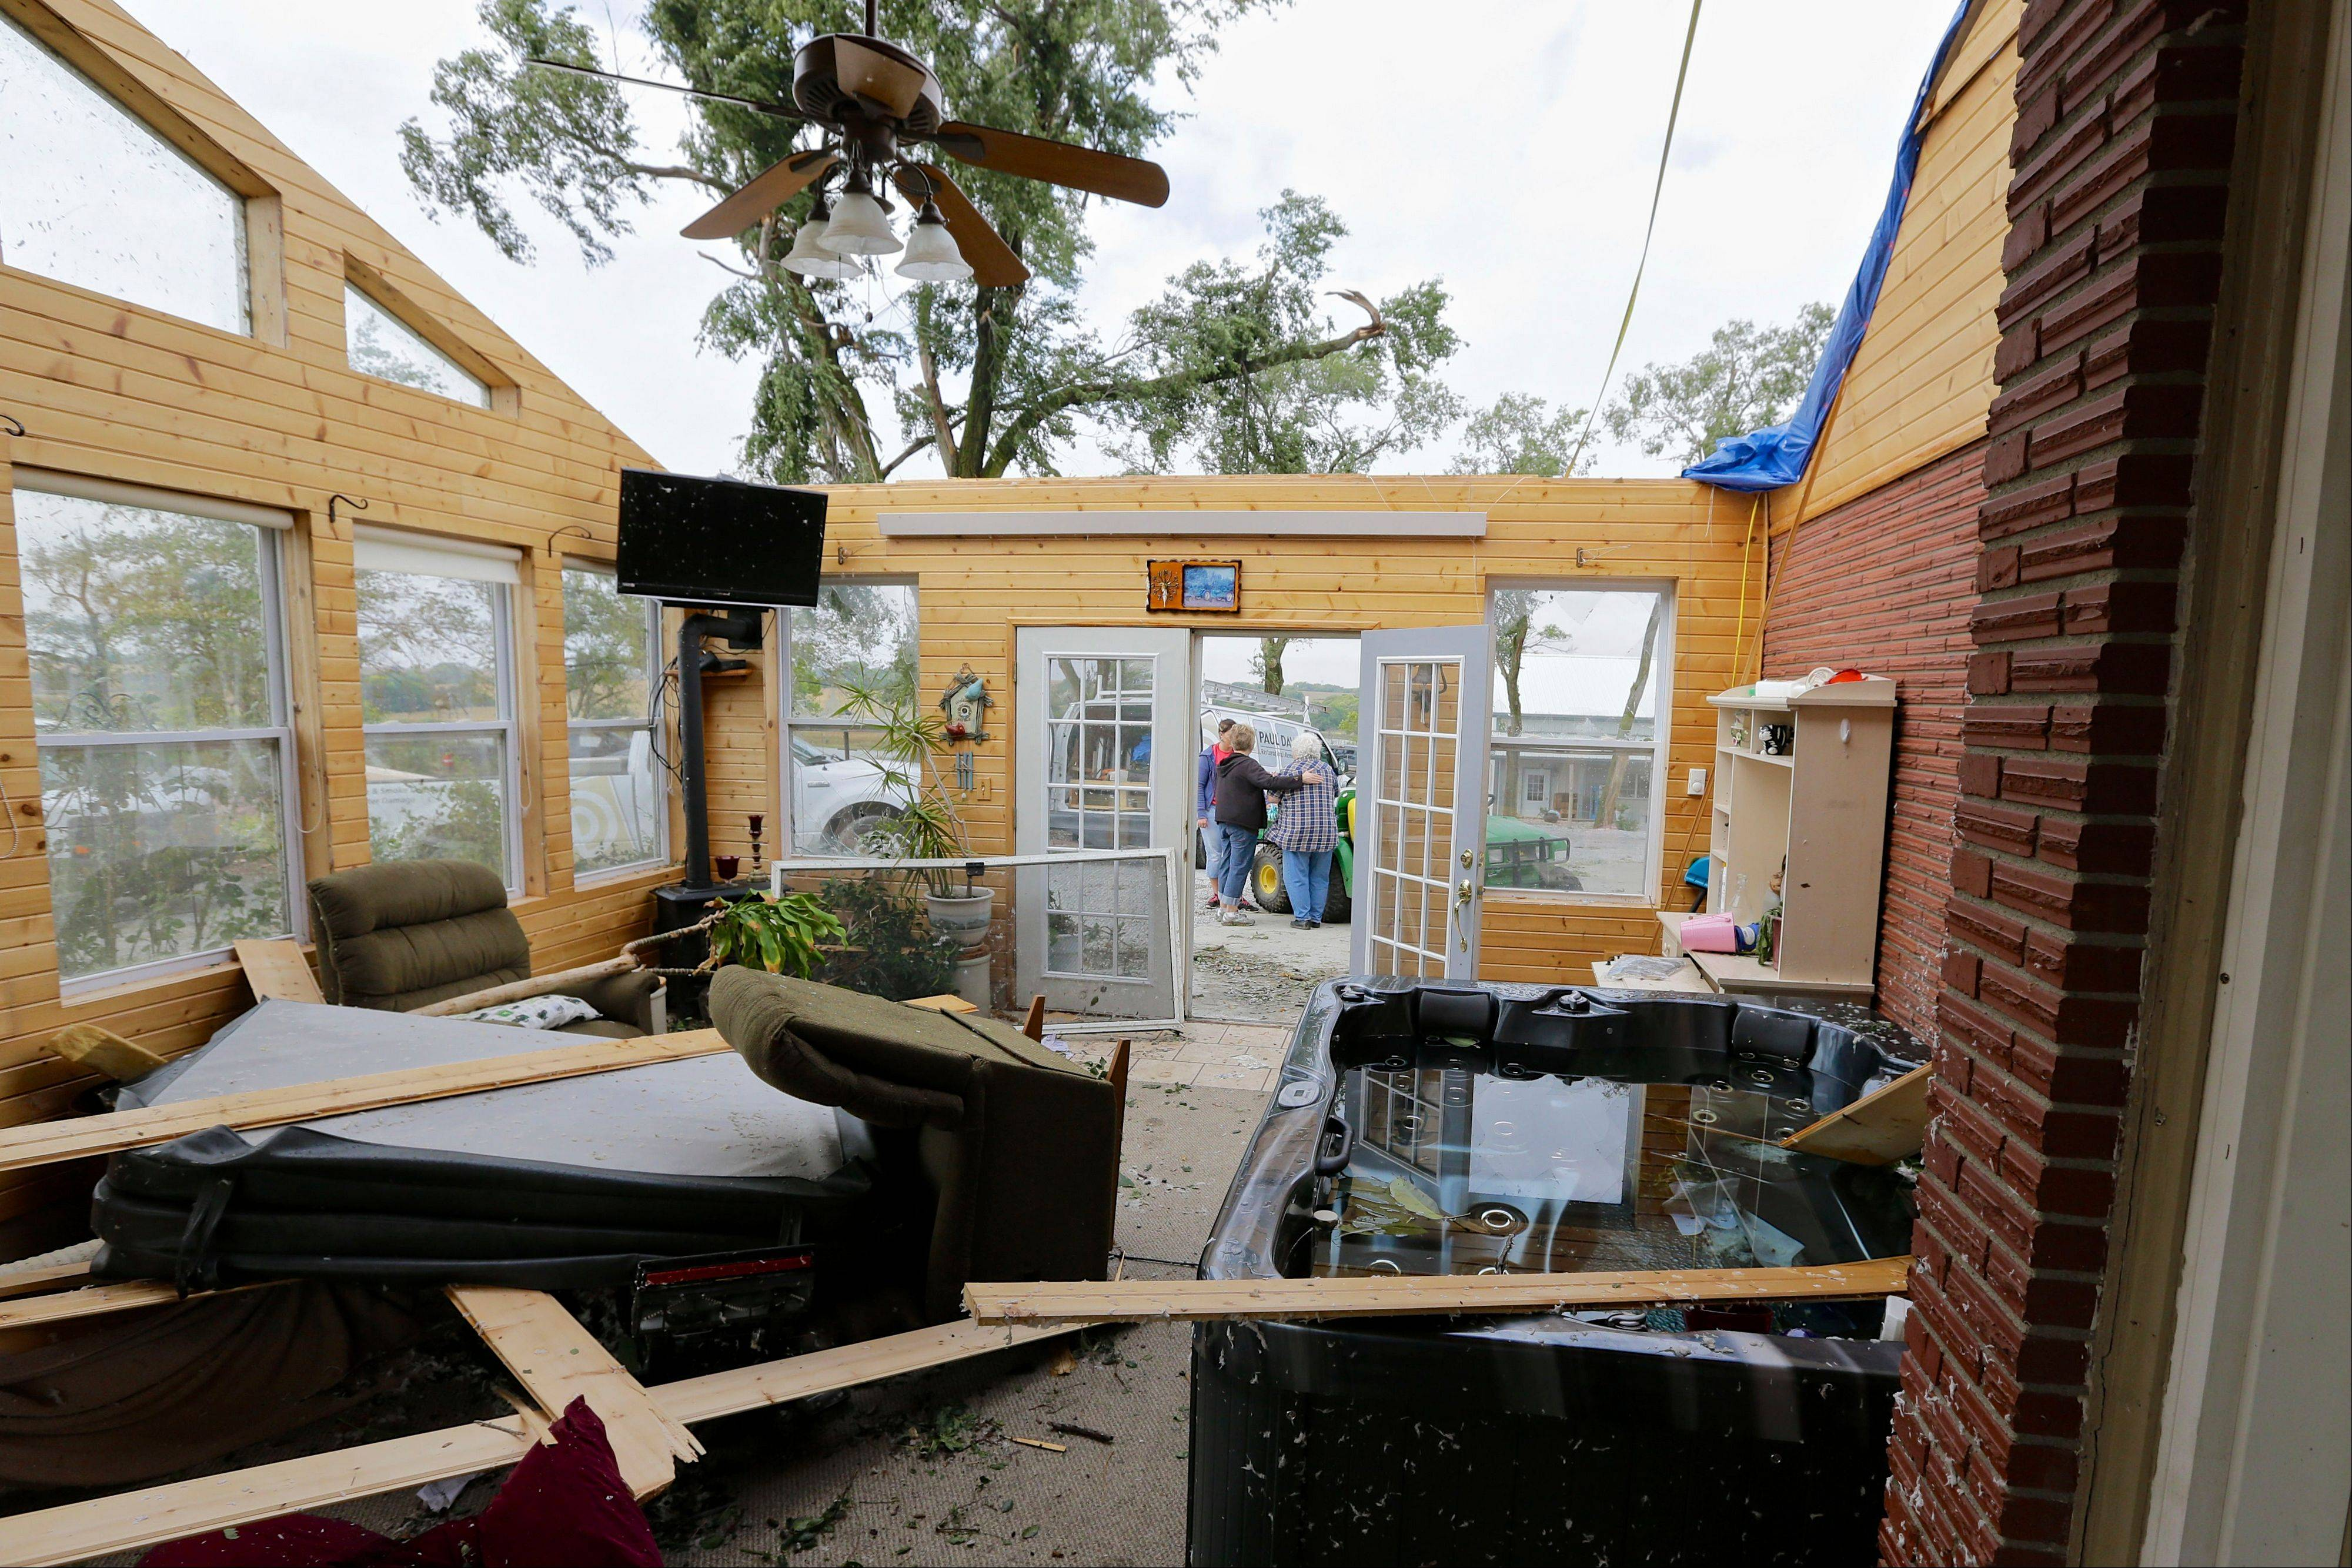 A neighbor comforts Vicki Kempkes, right, after her home was hit by a tornado in Bennet, Neb., Friday, Oct. 4, 2013. Powerful storms crawled into the Midwest on Friday, dumping heavy snow in South Dakota, spawning a tornado in Nebraska and threatening dangerous thunderstorms from Oklahoma to Wisconsin.